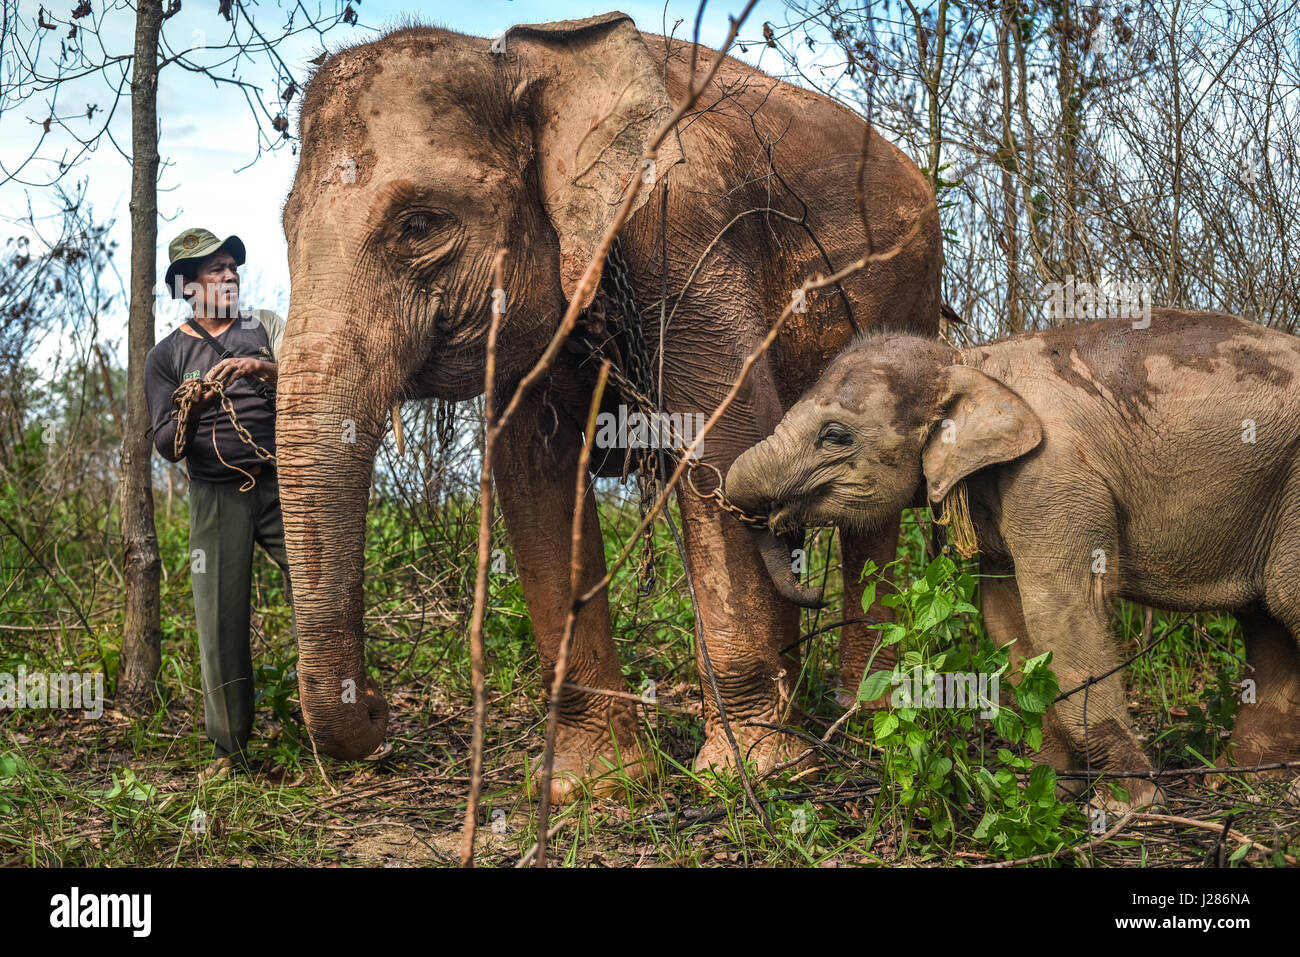 A mahout is preparing an elephant calf to walk with its mother on the feeding ground of Way Kambas National Park, - Stock Image